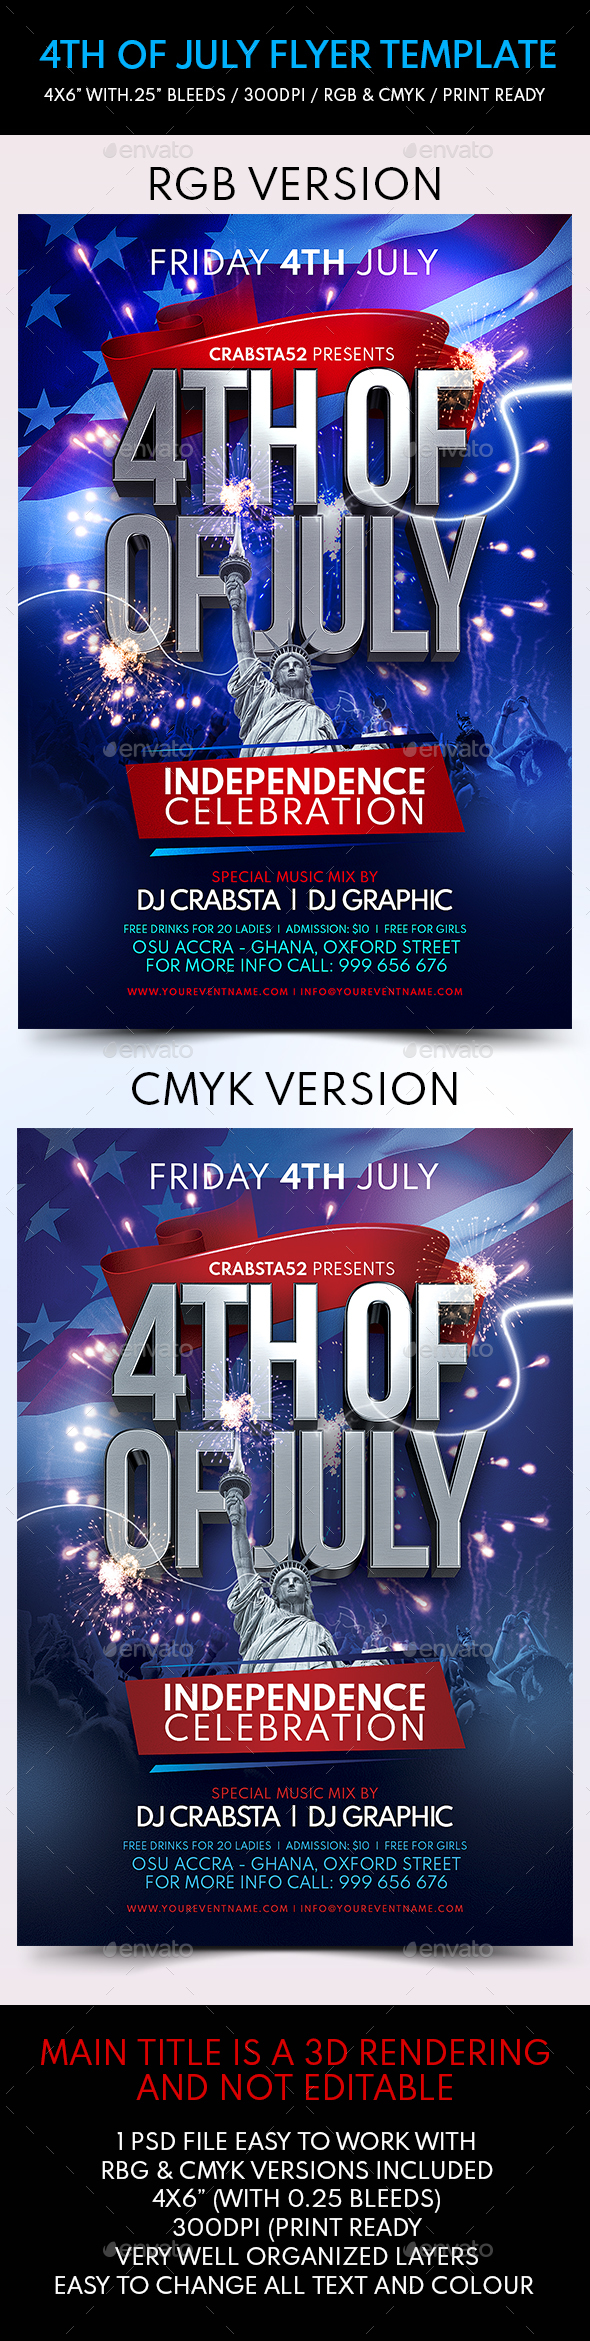 4th of July Flyer Template - Flyers Print Templates